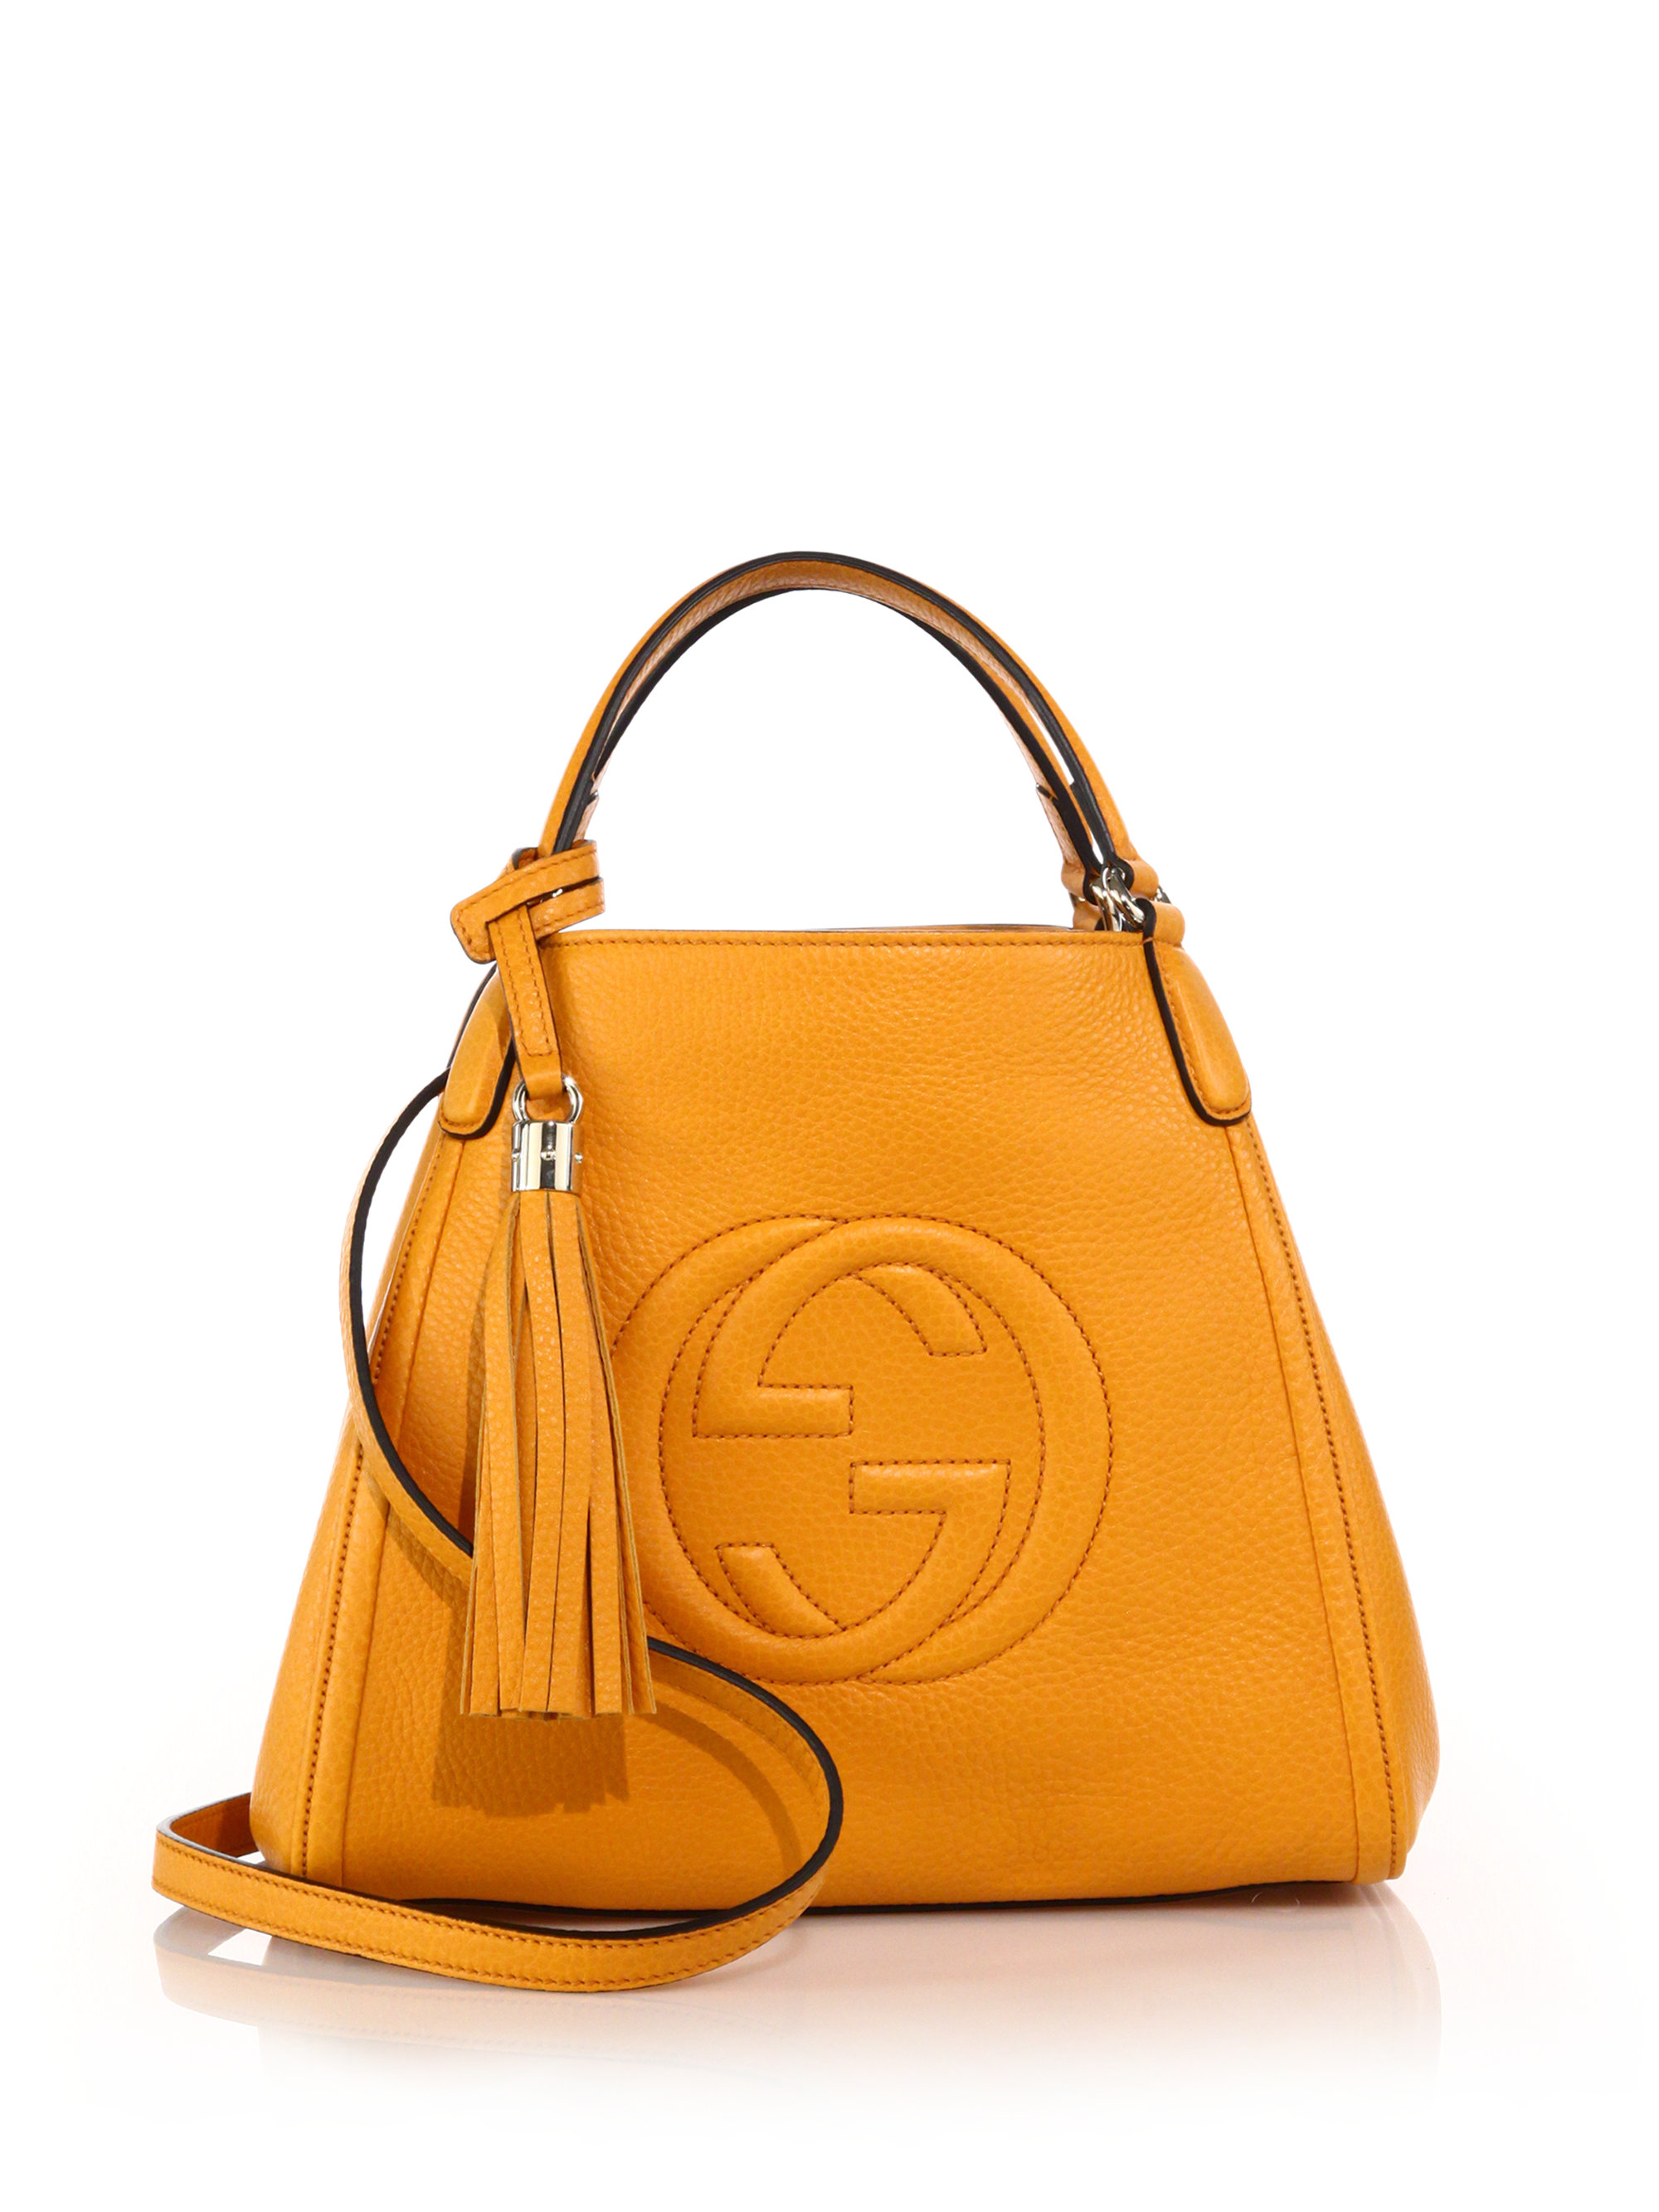 Gucci Soho Leather Shoulder Bag in Yellow | Lyst